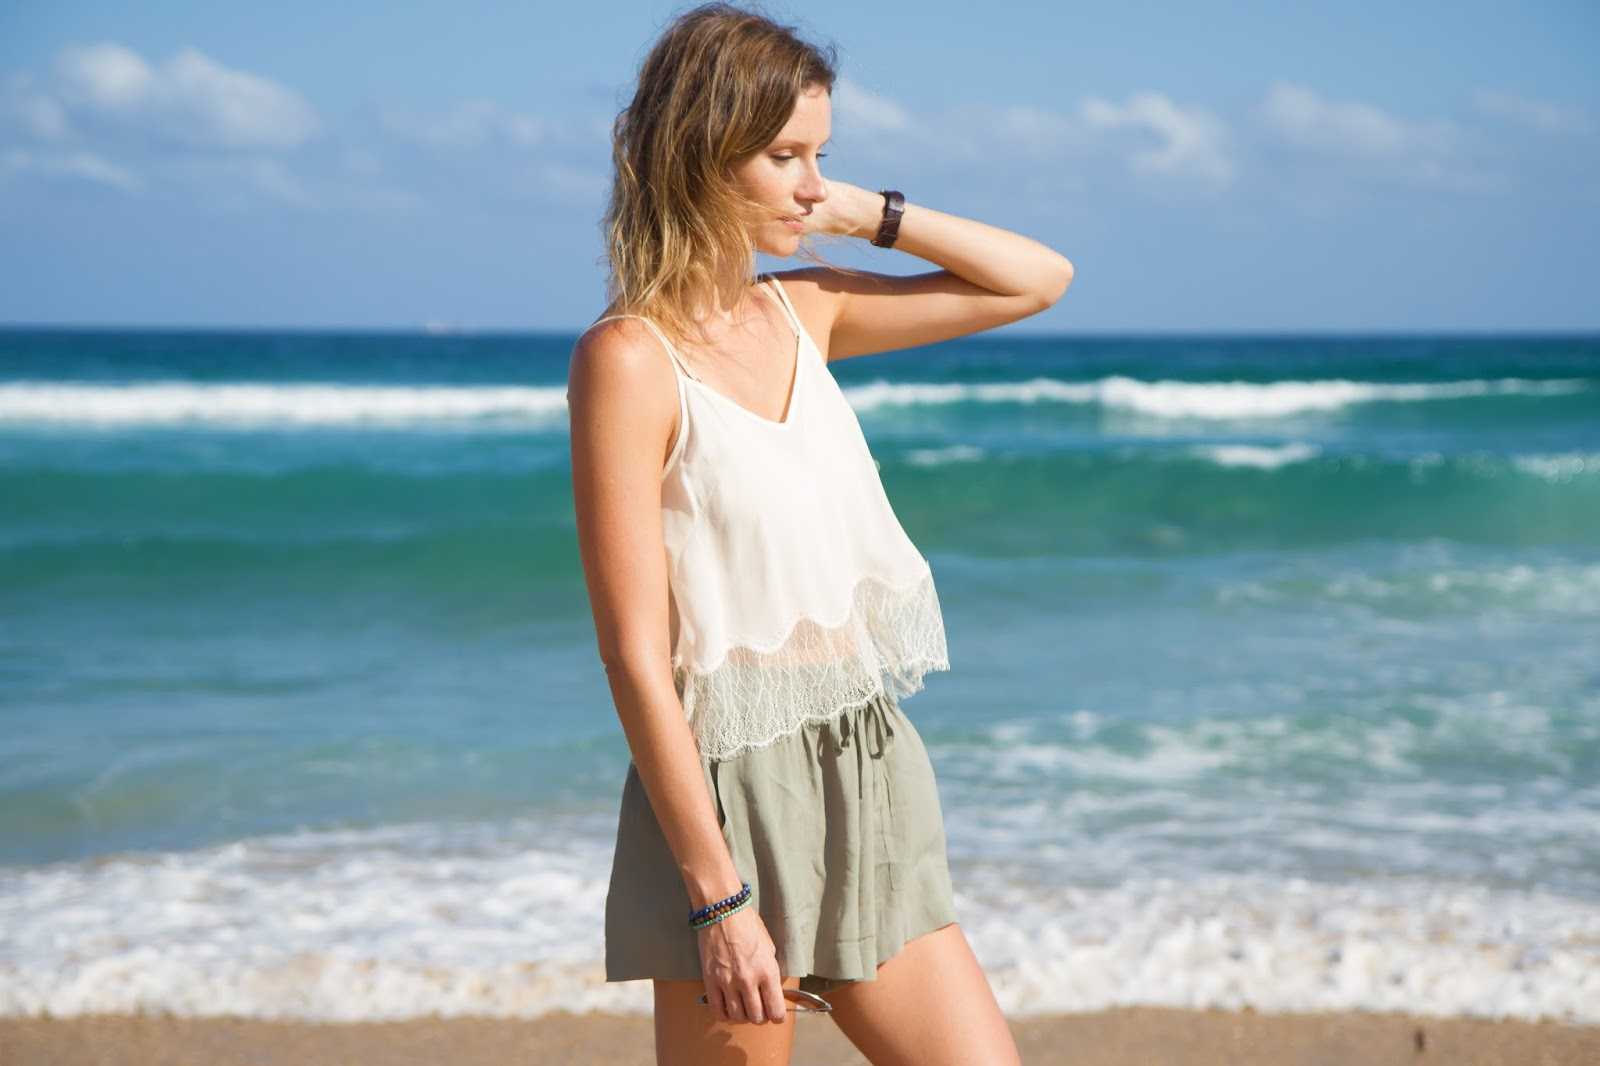 fashion and travel blogger, Alison Hutchinson, is wearing an aritzia cropped tank and Topshop shorts